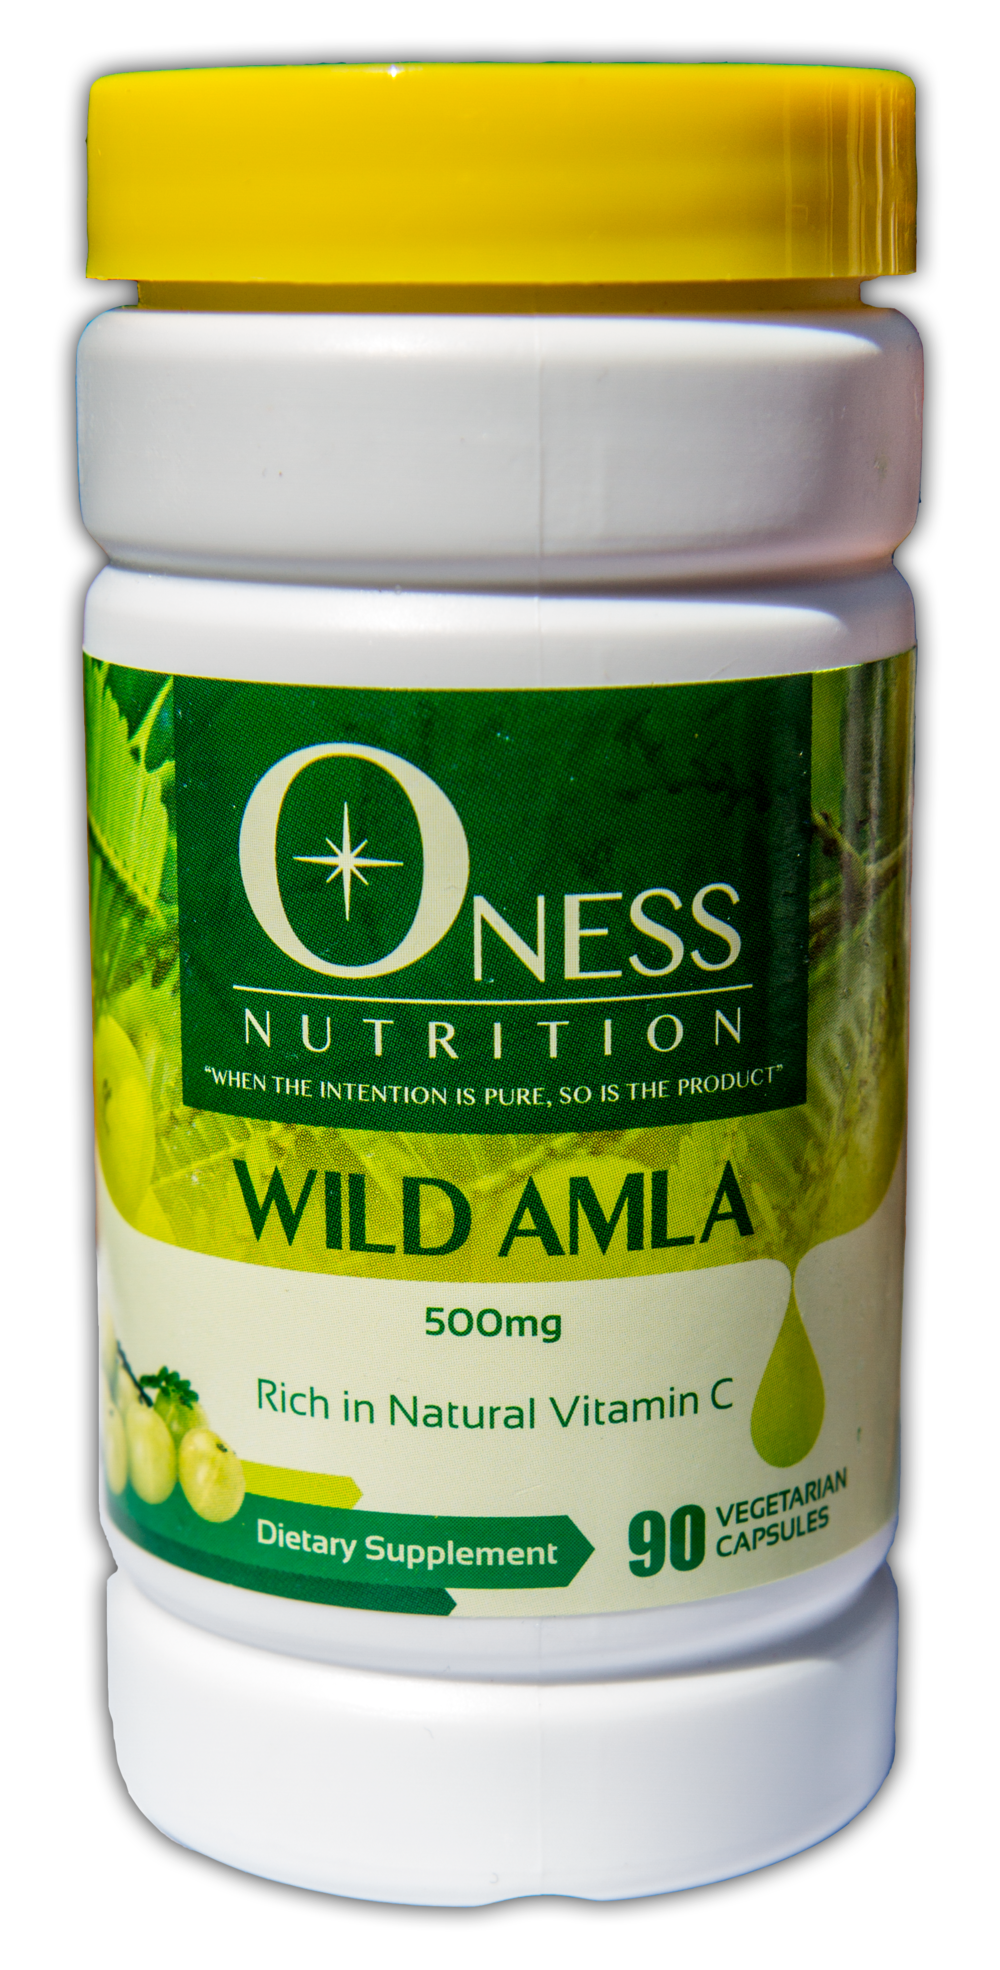 Wild Amla Natural Vitamin C